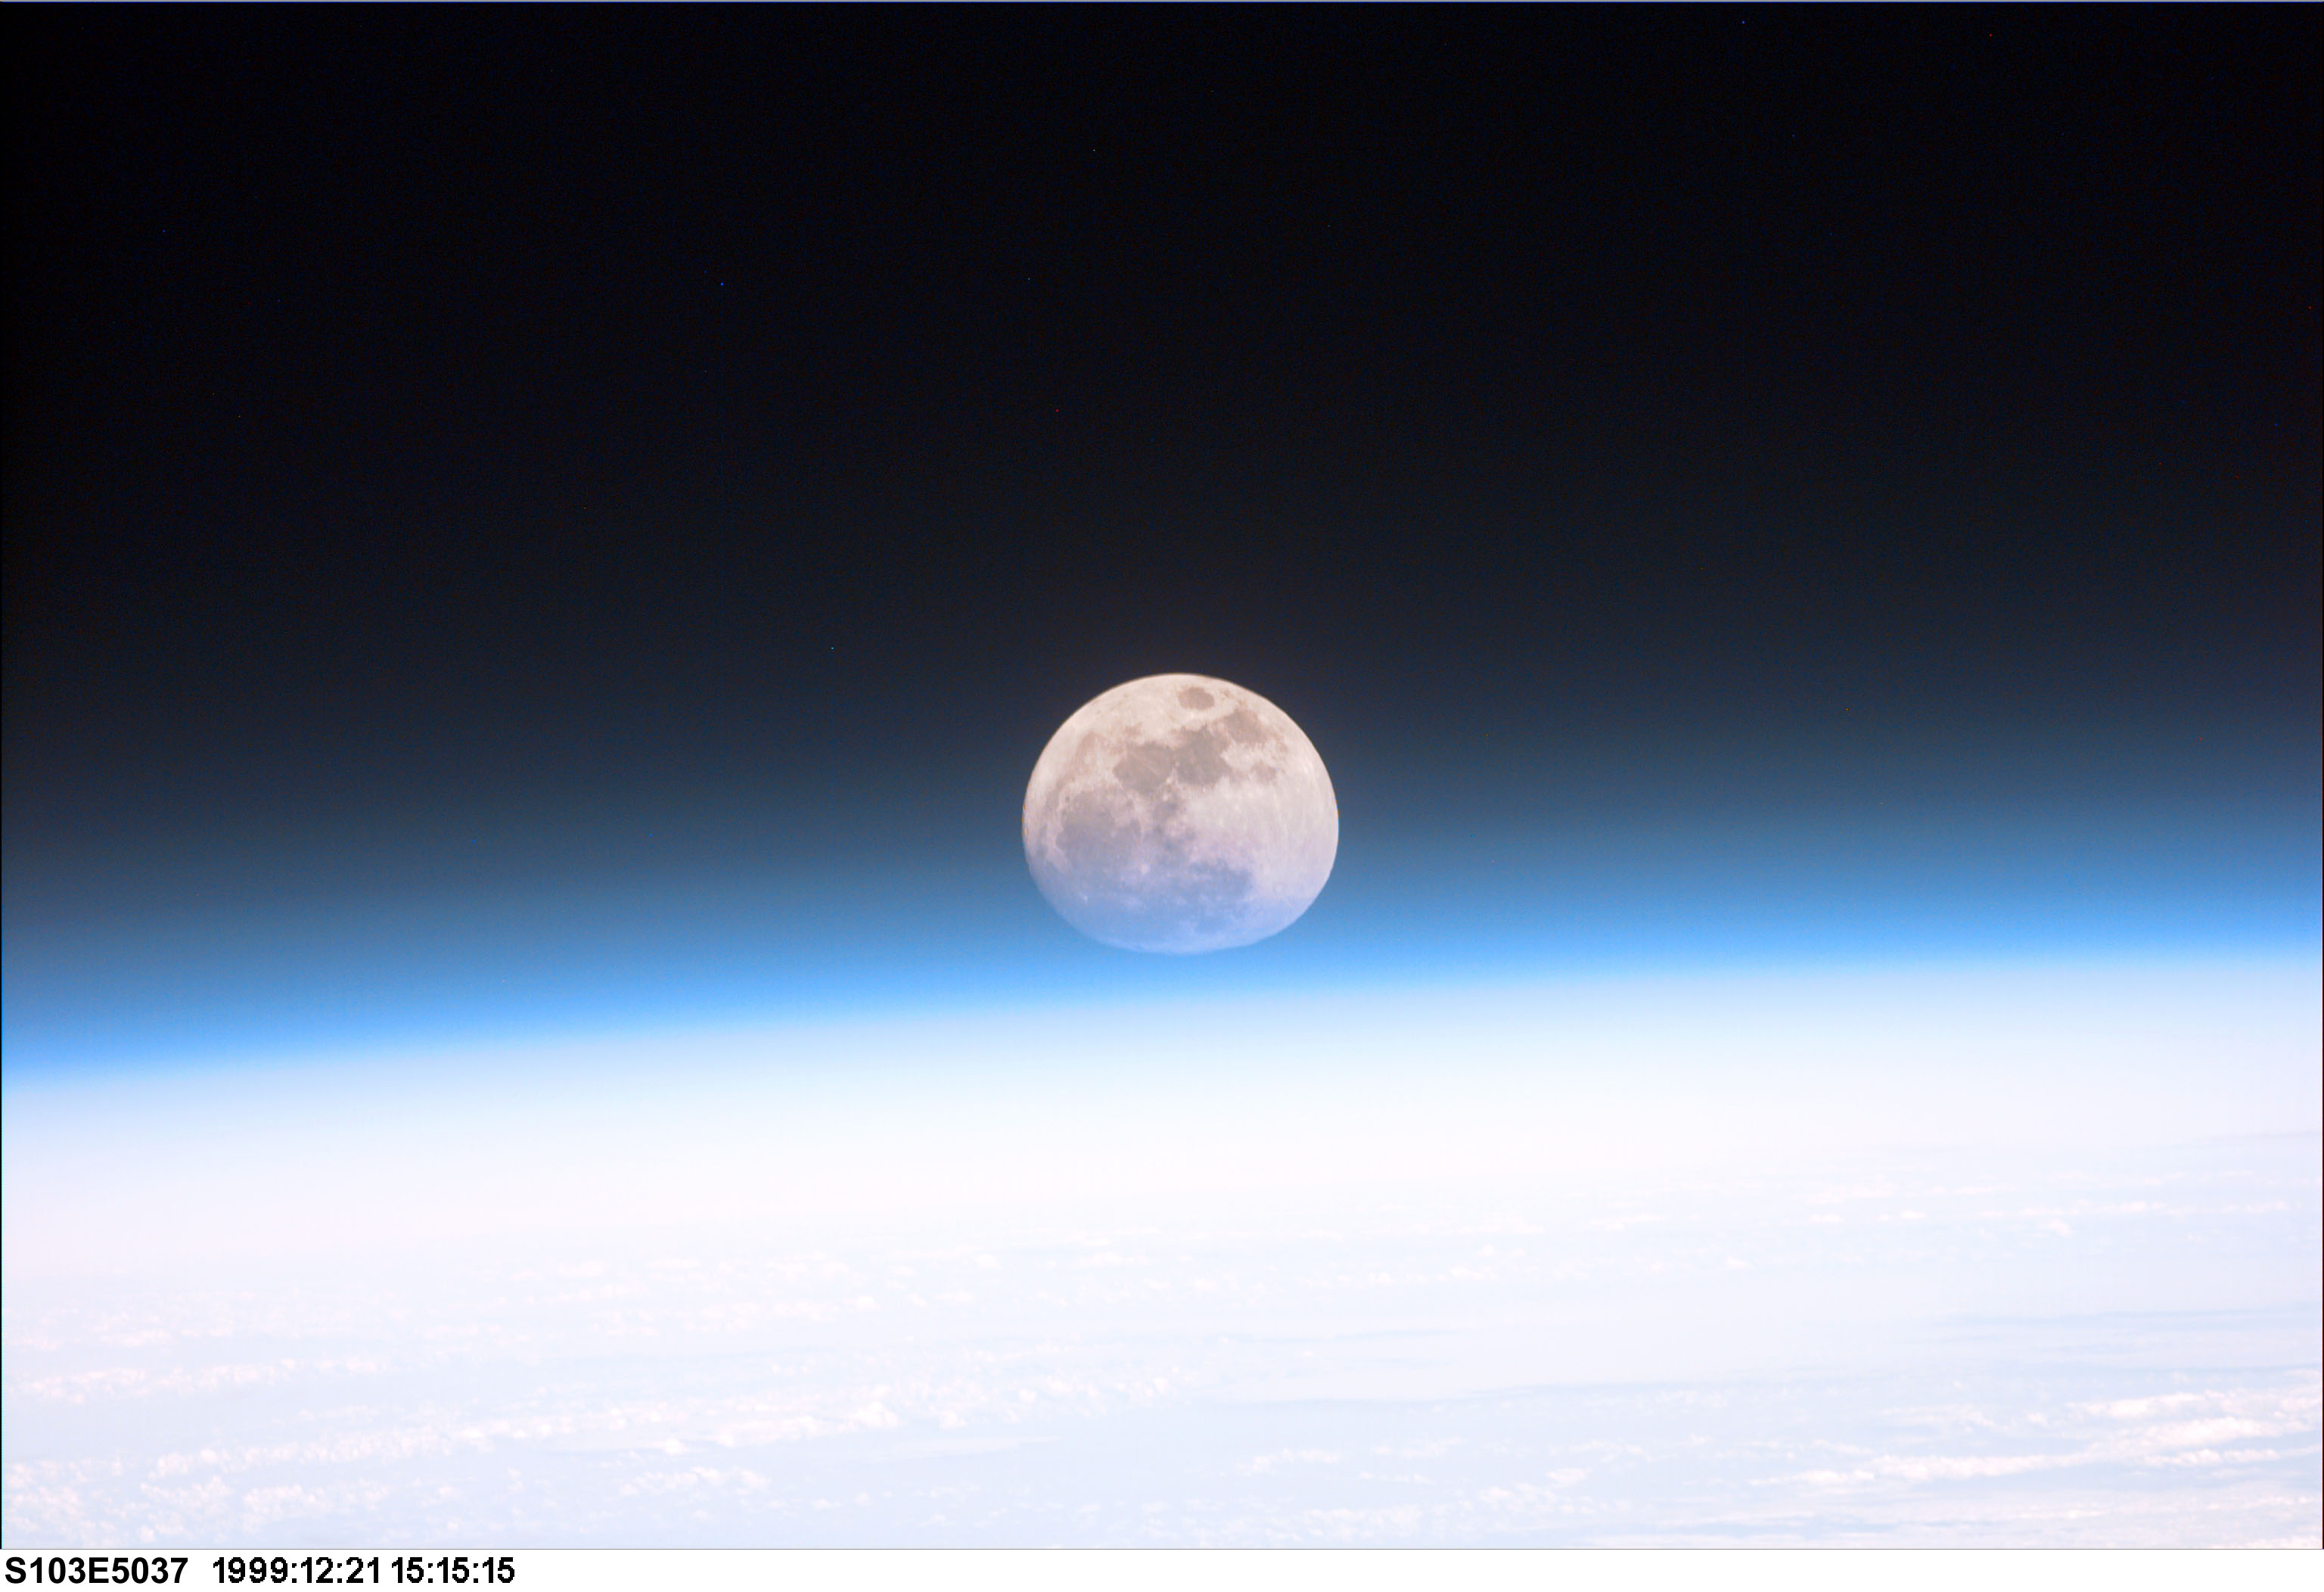 The Moon, as seen from Earth orbit / Space Science / Our